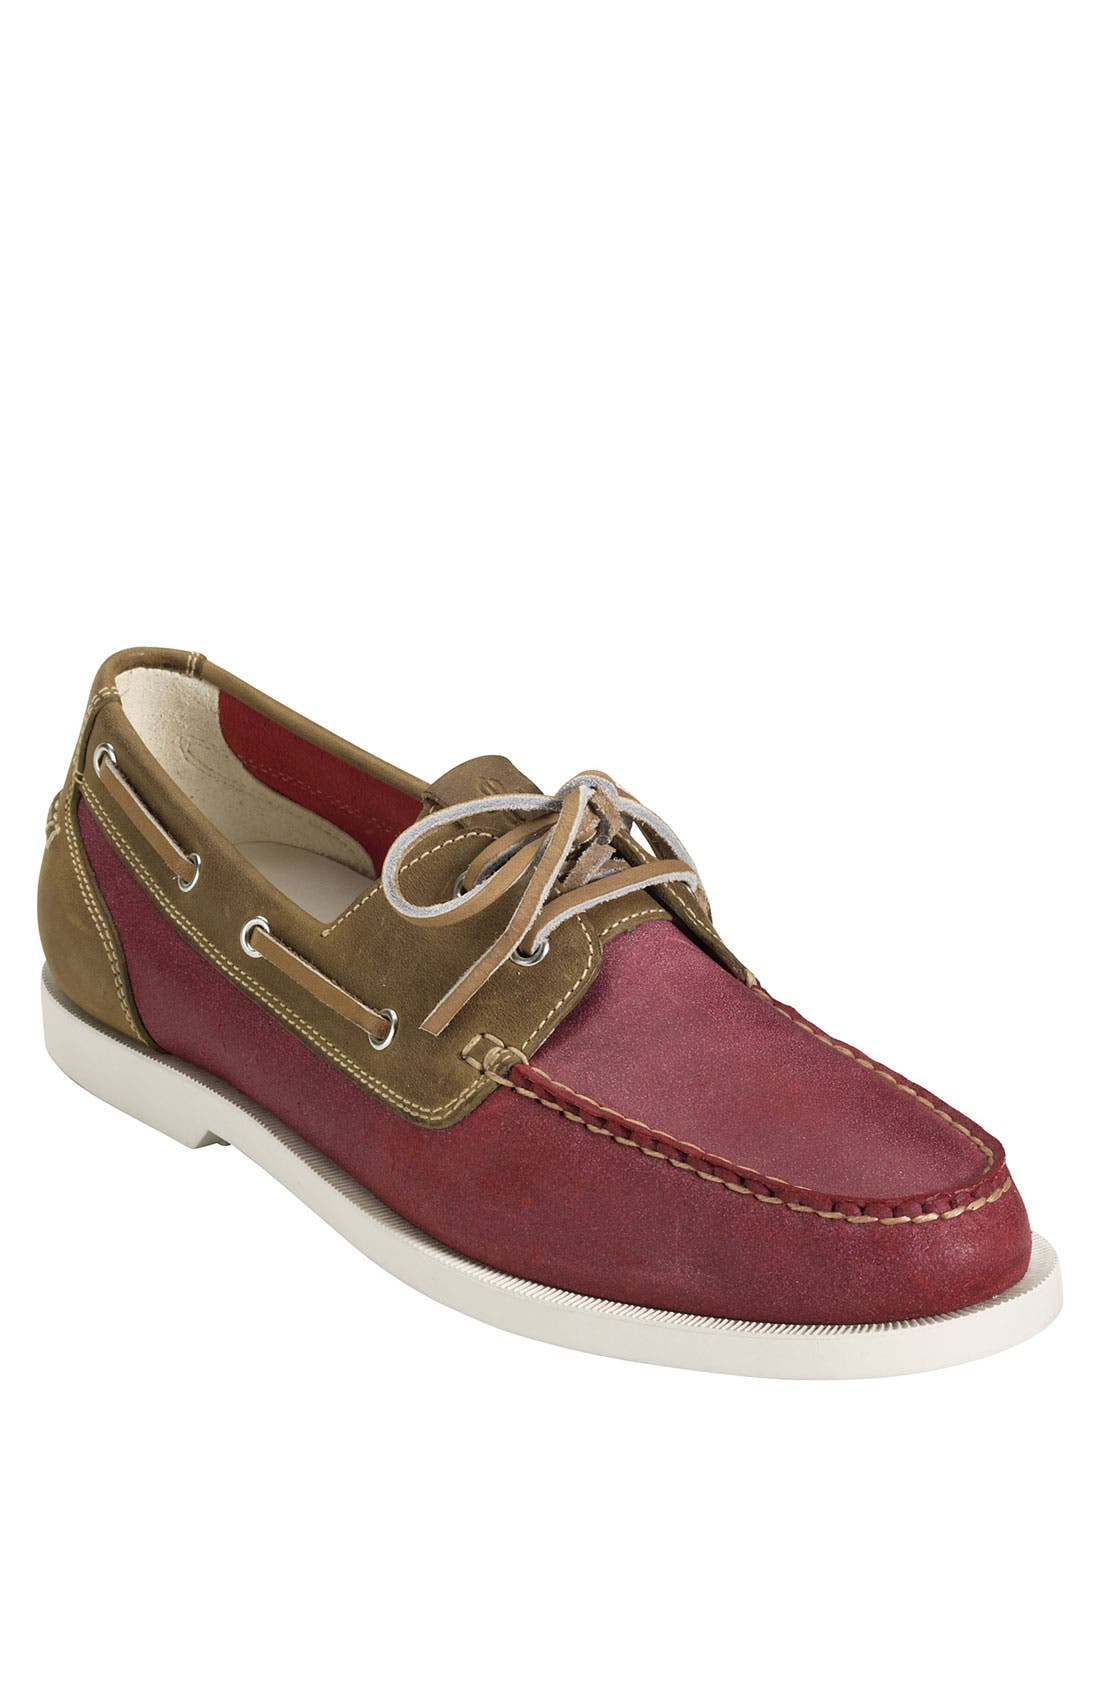 Main Image - Cole Haan 'Air Yacht Club' Boat Shoe